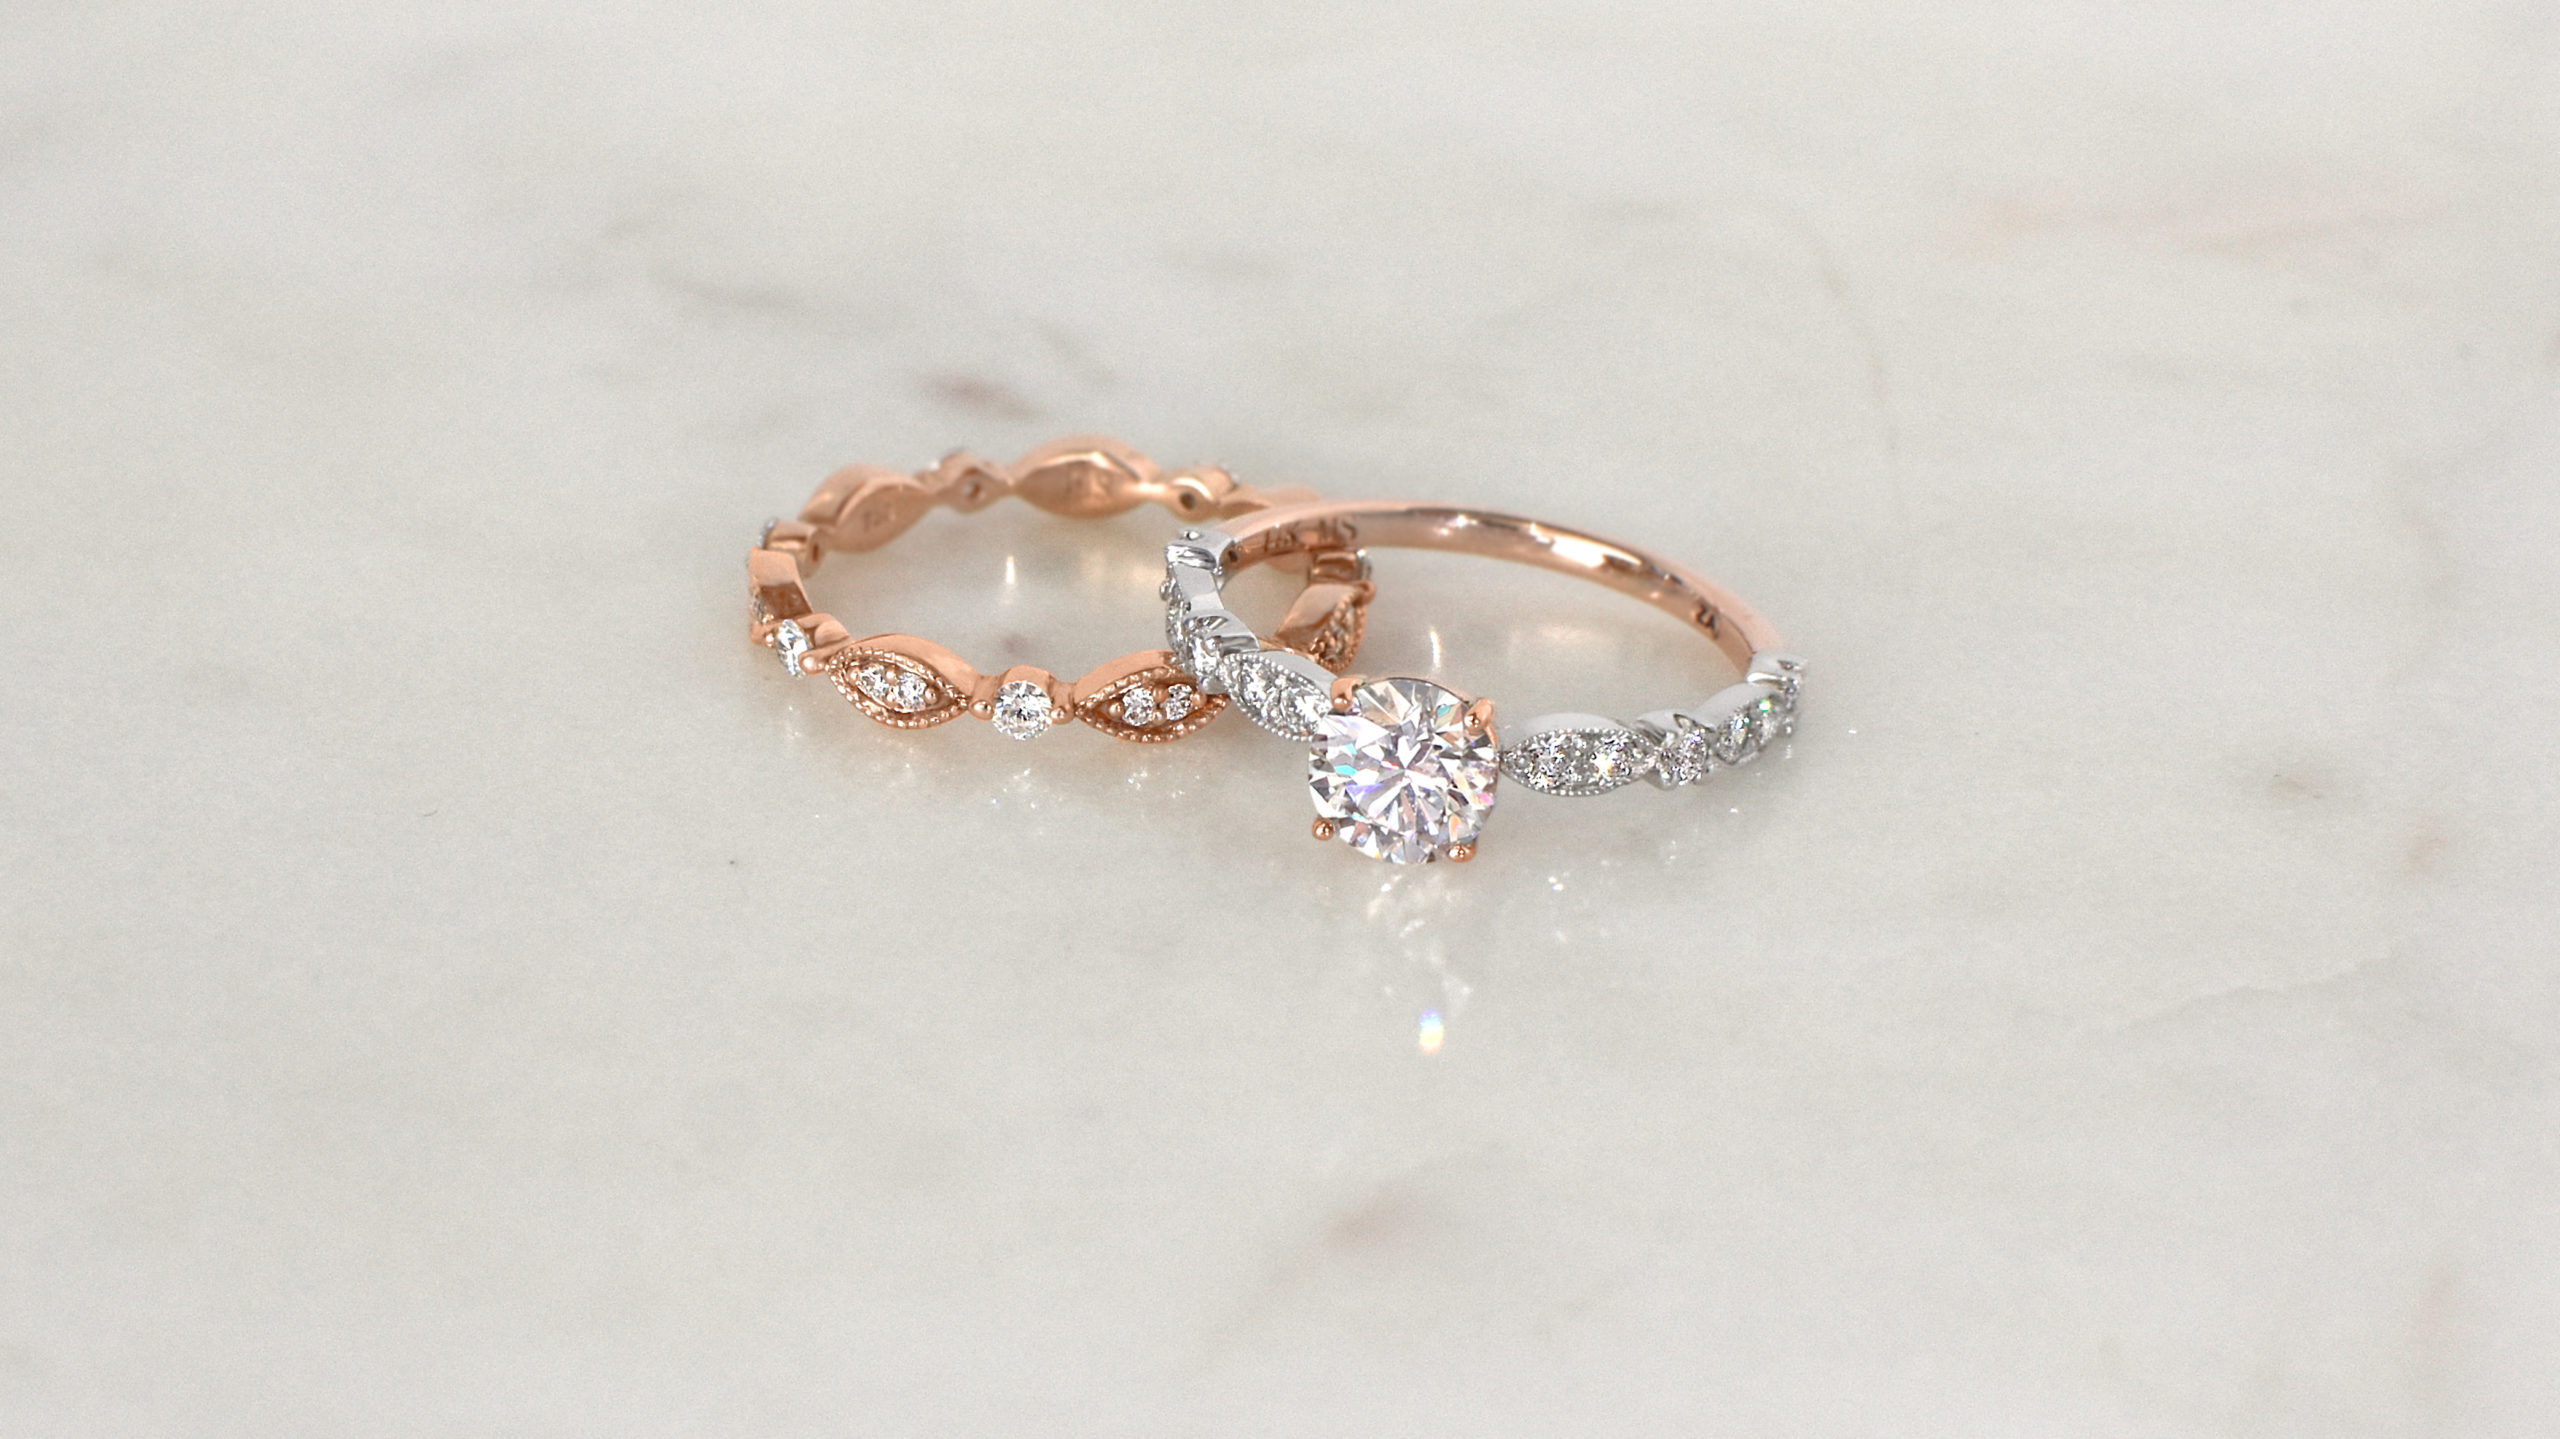 Two-Tone Gold Vintage-Inspired Diamond Ring in 14ct Rose and White Gold | Diamond Rings